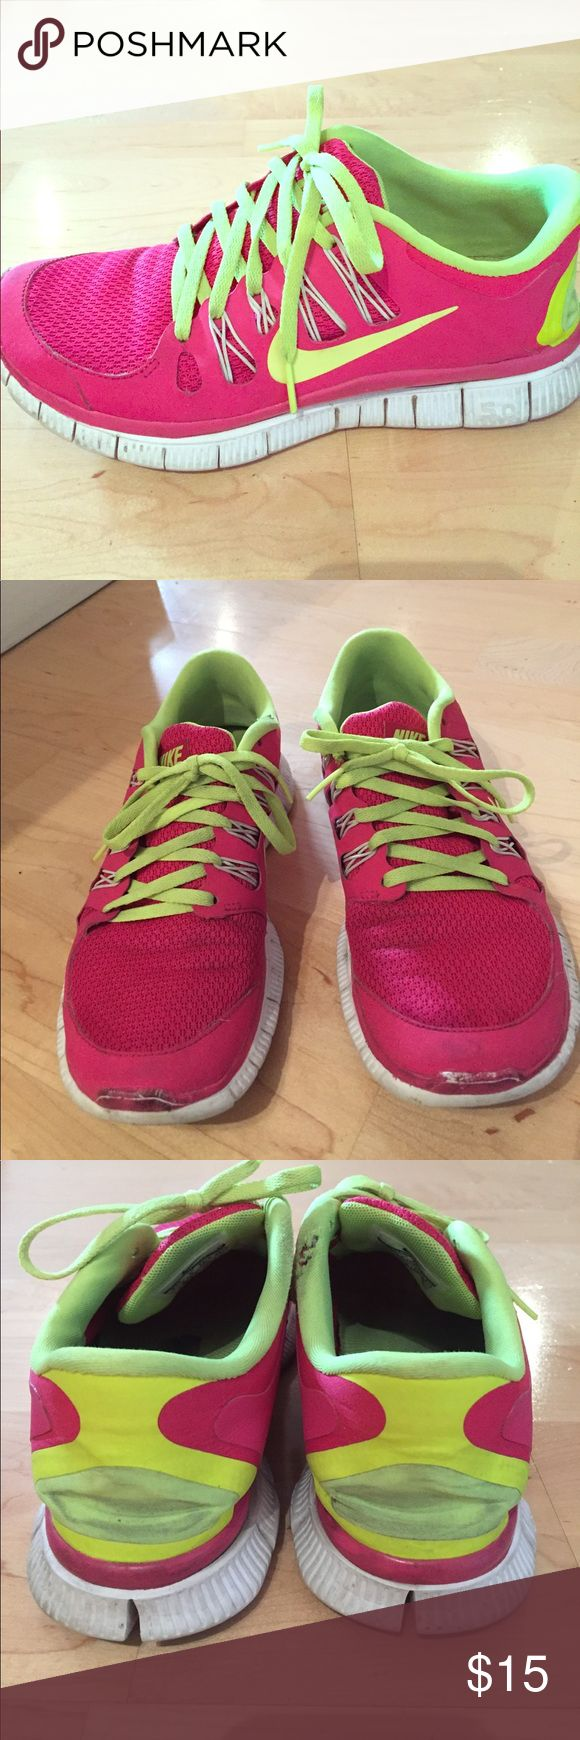 Nike Free Pink and Neon Green Shoes Nike Free Pink and Lime Green Shoes / shoes are worn and show signs of scratches and dirt Nike Shoes Sneakers